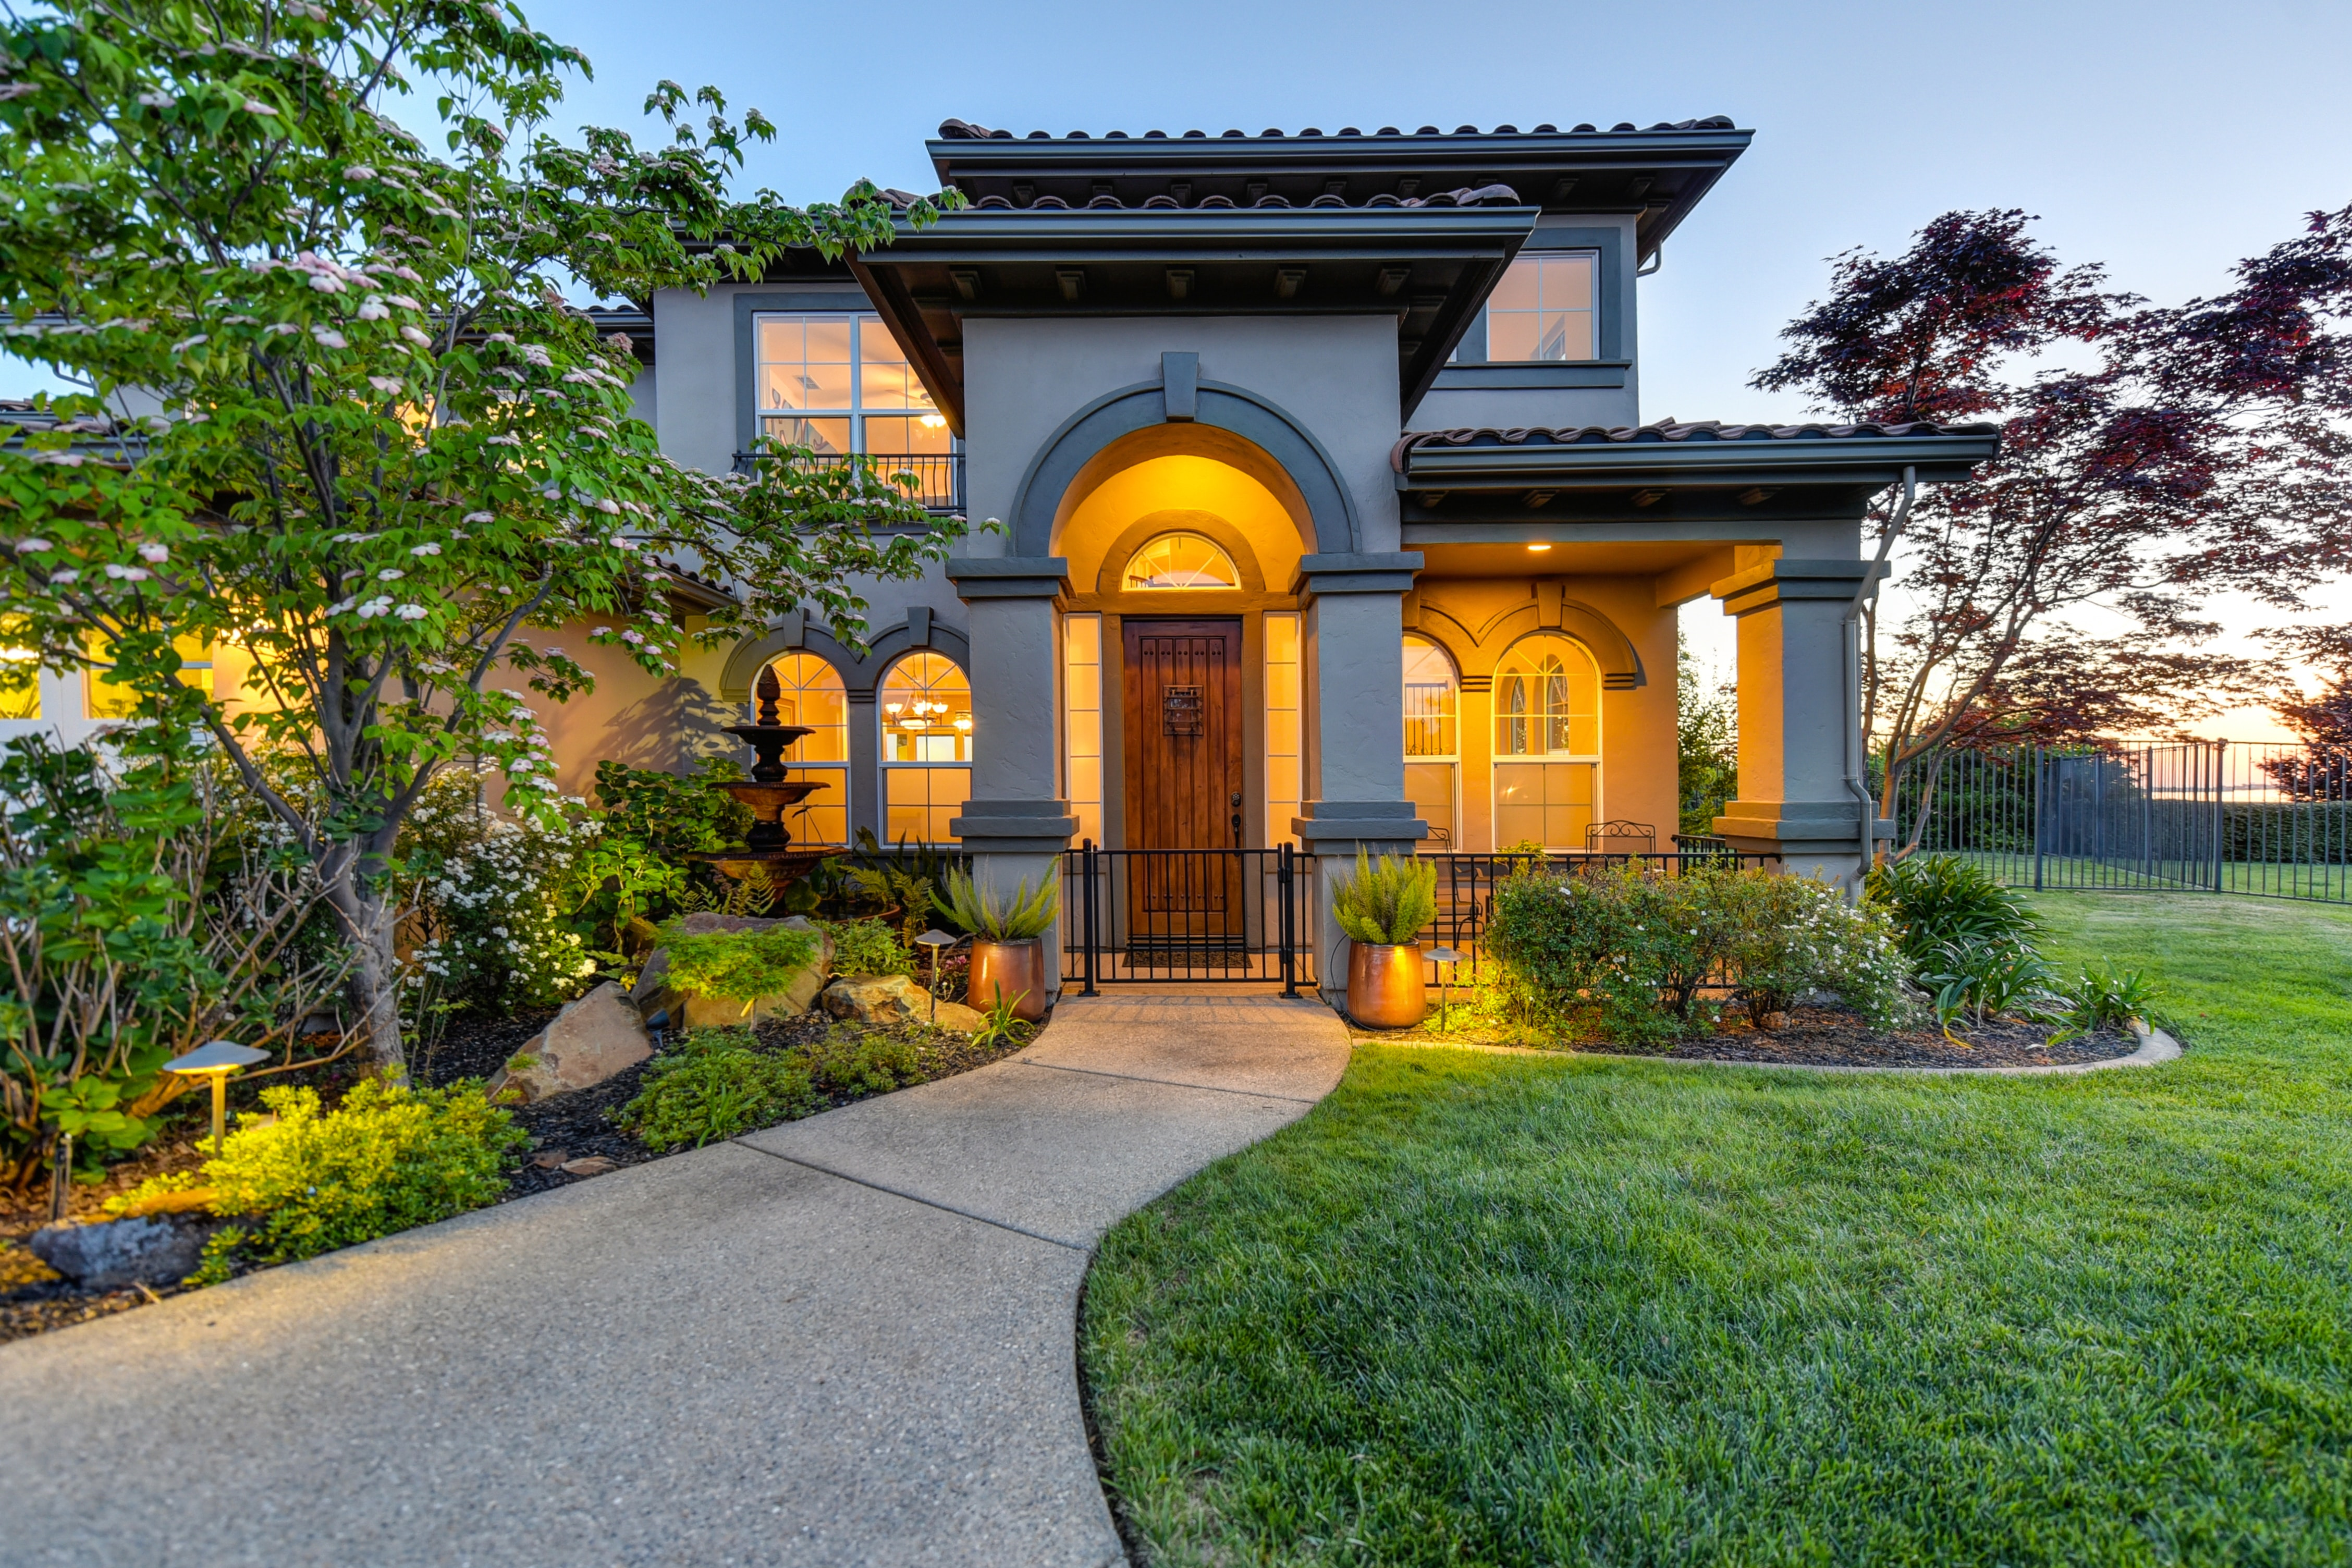 EXTERIOR TIPS TO ATTRACT THE MOST BUYERS FOR YOUR HOME